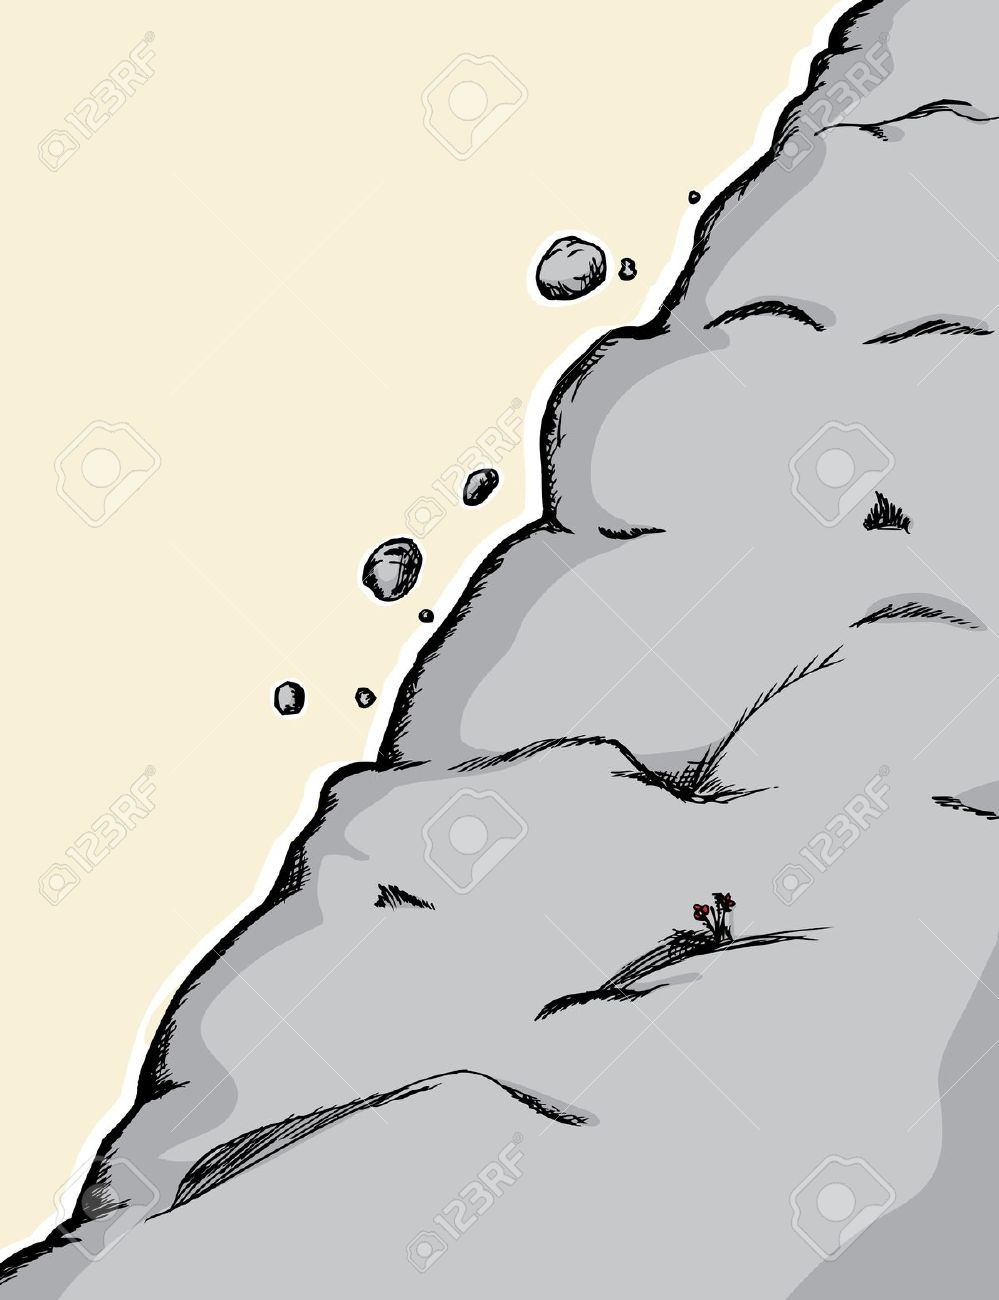 Steep Cliffs Clip Art.